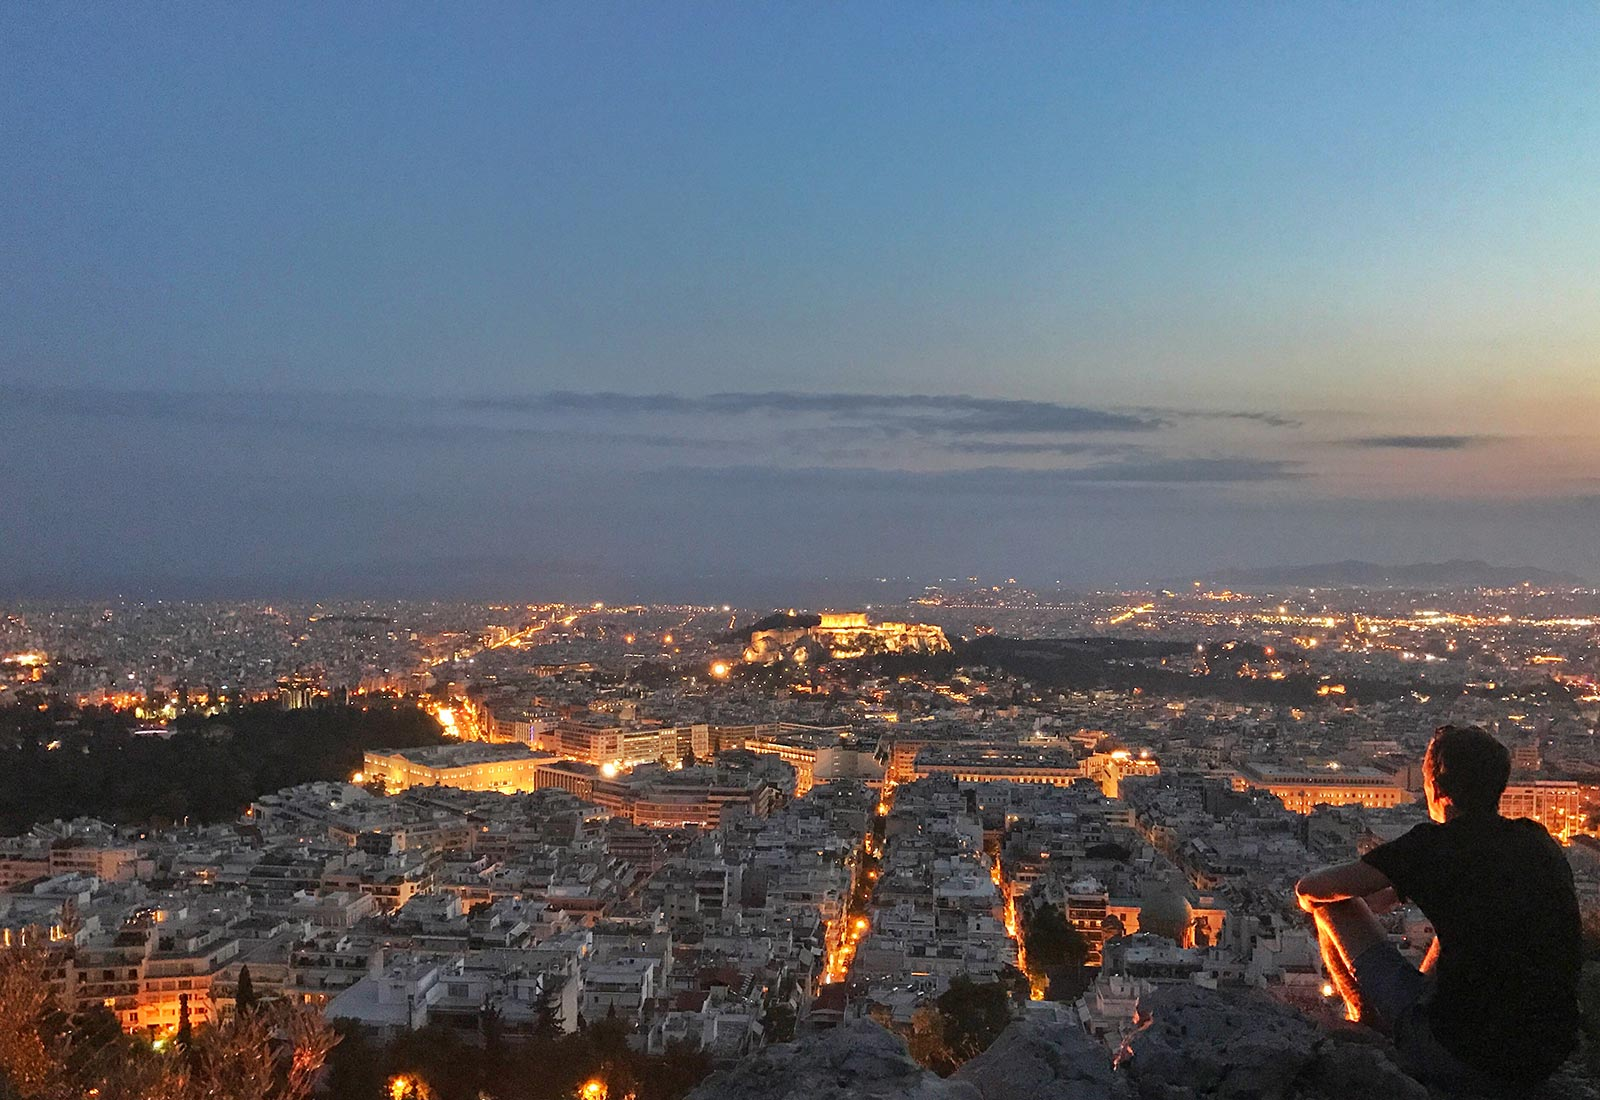 David Simpson on top of Mount Lycabettus at night in Athens, Greece. Athens has me